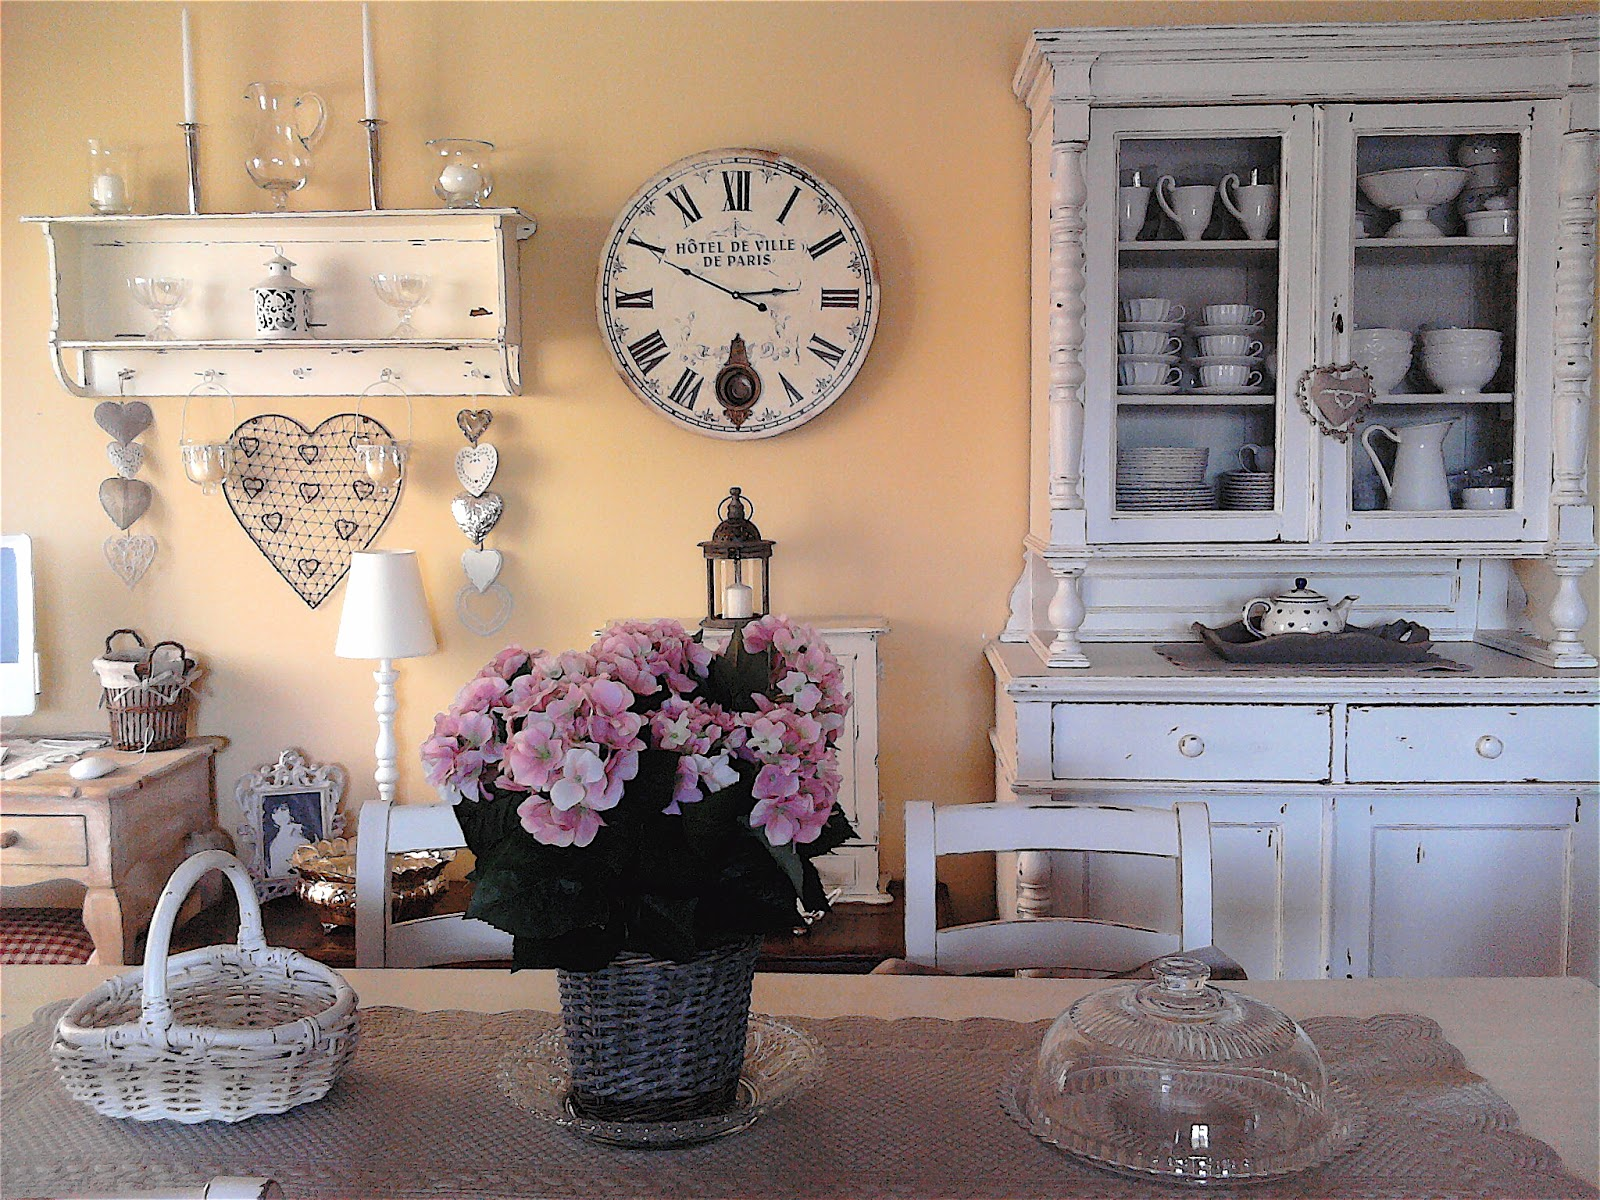 Le case di deni shabby style for Case in stile hacienda con cortili